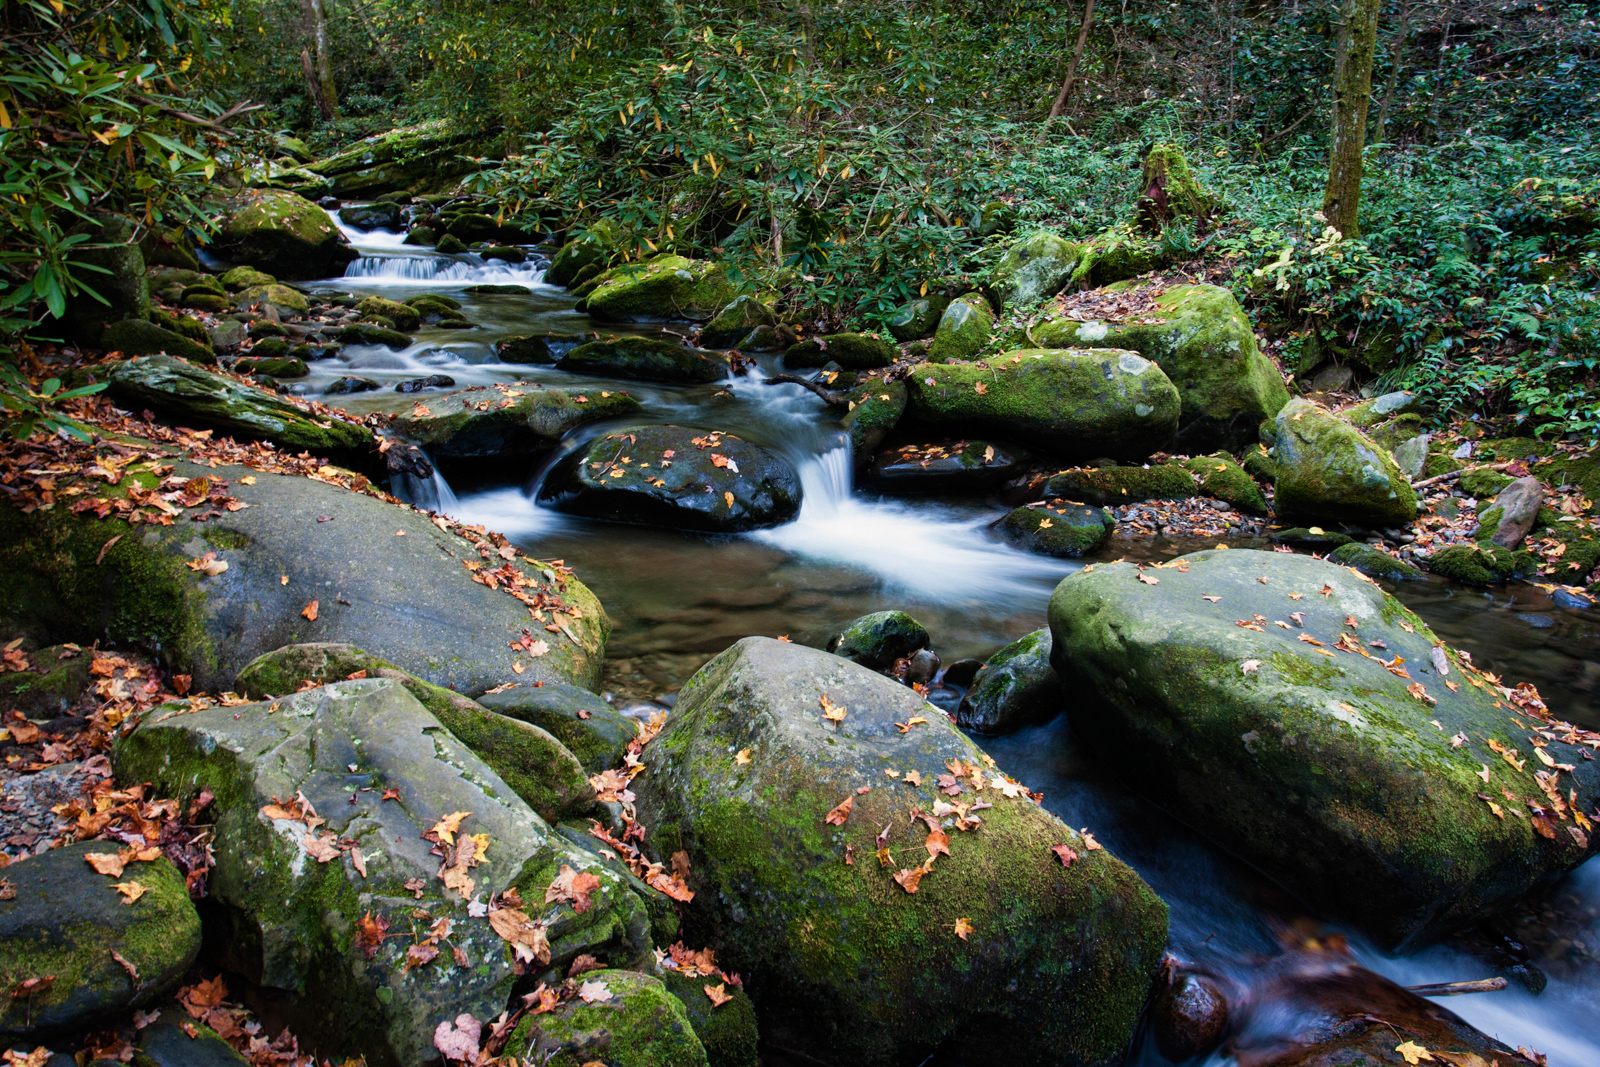 Great Smoky Mountains National Park – Stream and Missionary Baptist Church